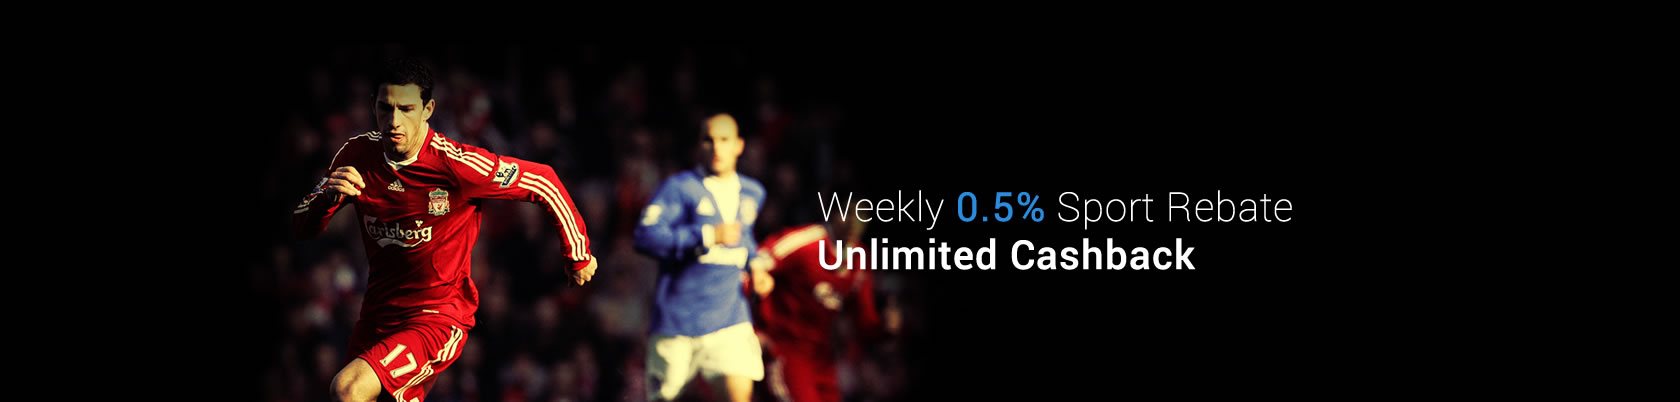 7Luck88 Weekly 0.5% Sport Rebate Unlimited Cashback